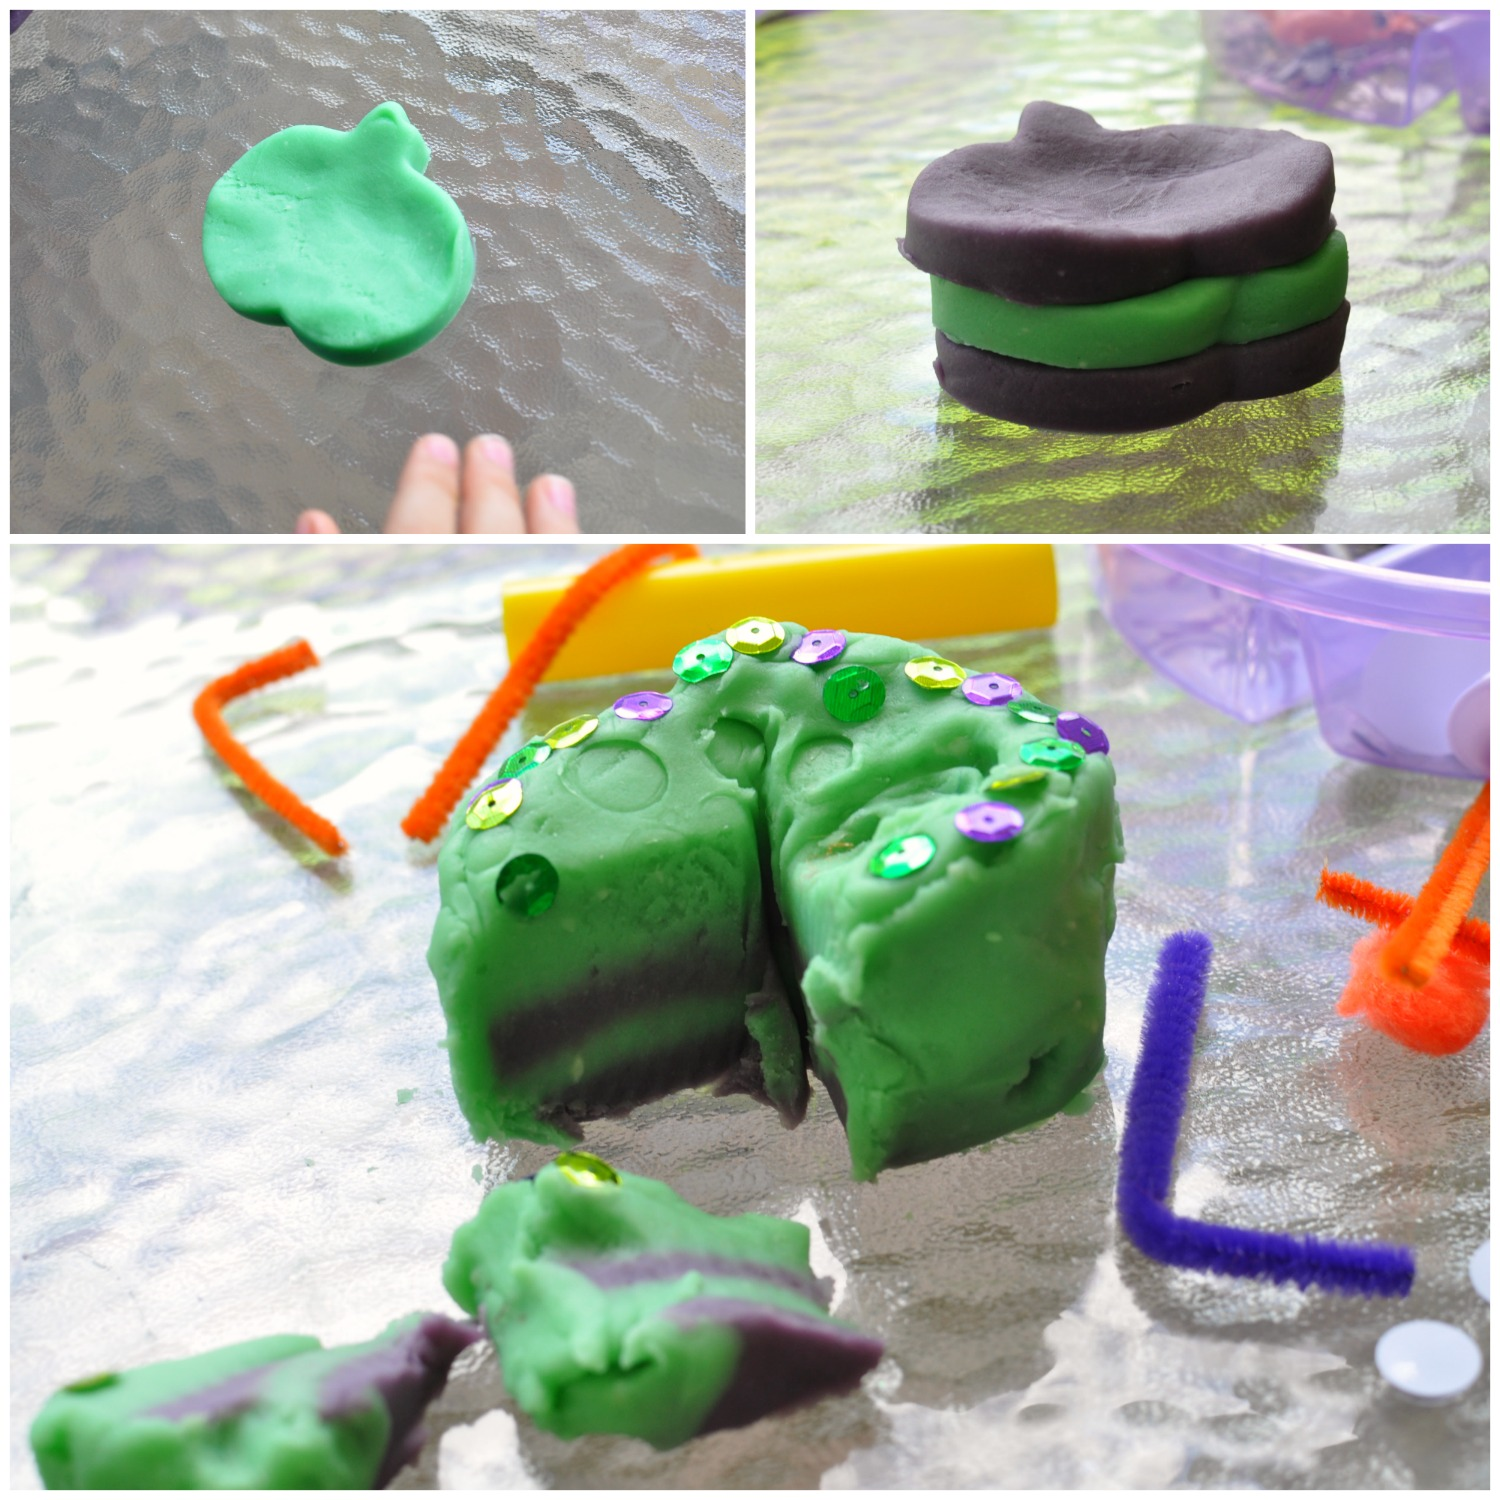 It's that time of your for spooky ghosts and goblins! Make this Monster Halloween Playdough and wow your kids with a fun and easy art project!